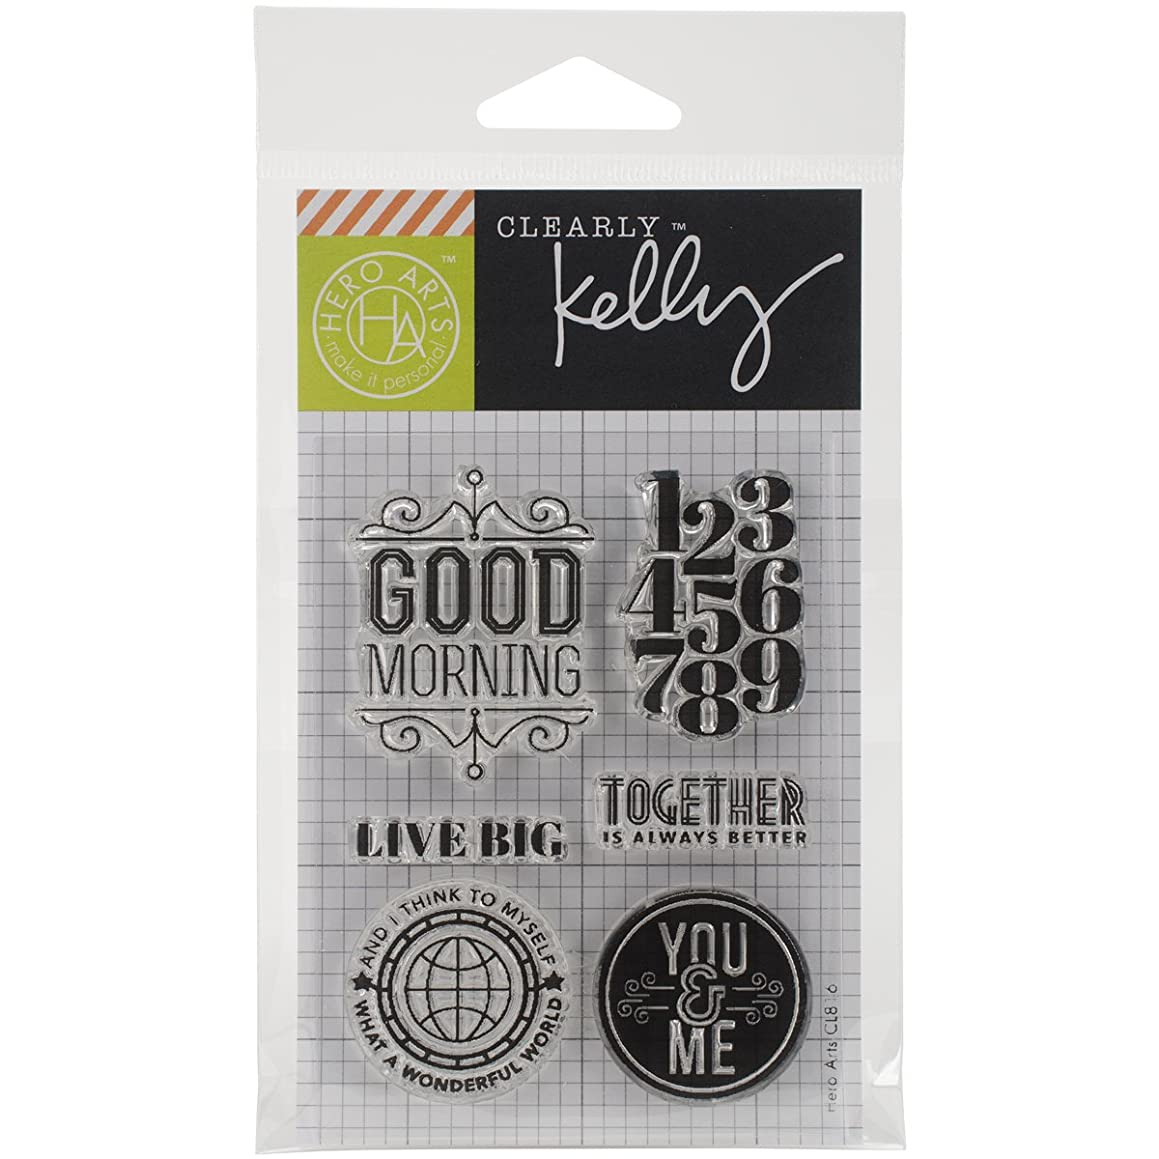 Hero Arts Kelly's Live Big Stamp Set, Clear